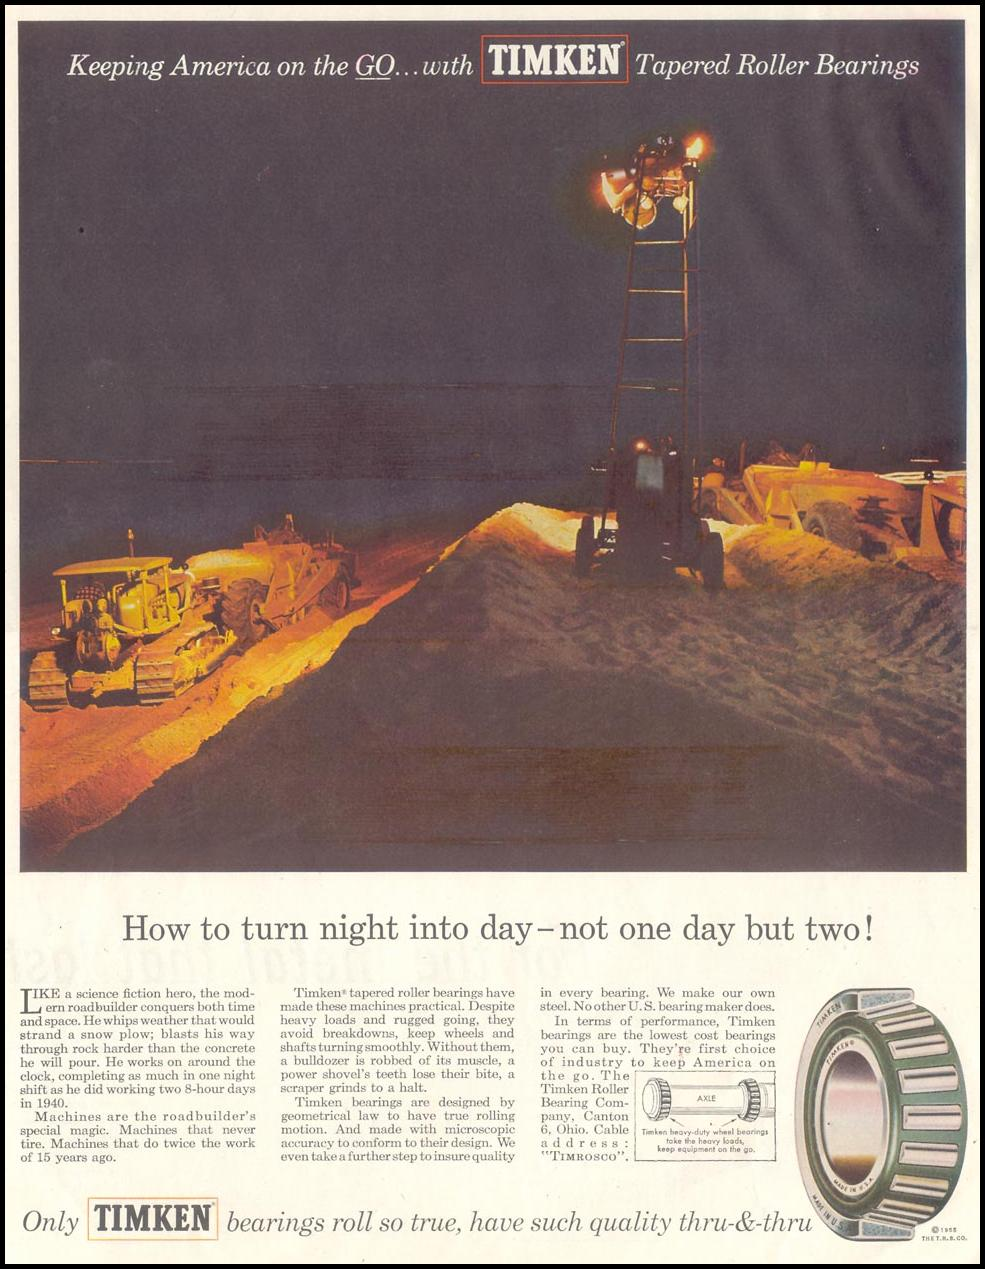 TIMKEN TAPERED ROLLER BEARINGS SATURDAY EVENING POST 12/10/1955